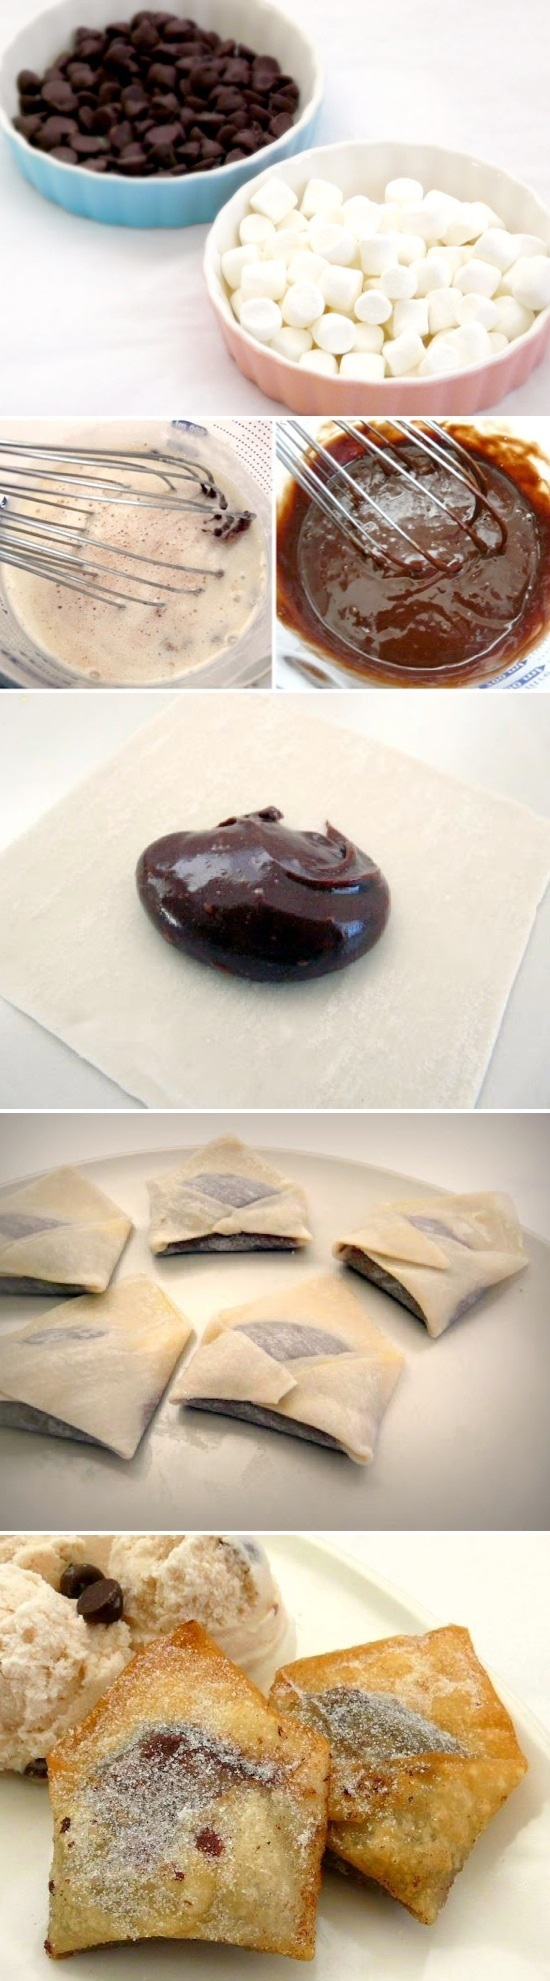 Chocolate Marshmallow Wontons Recipe